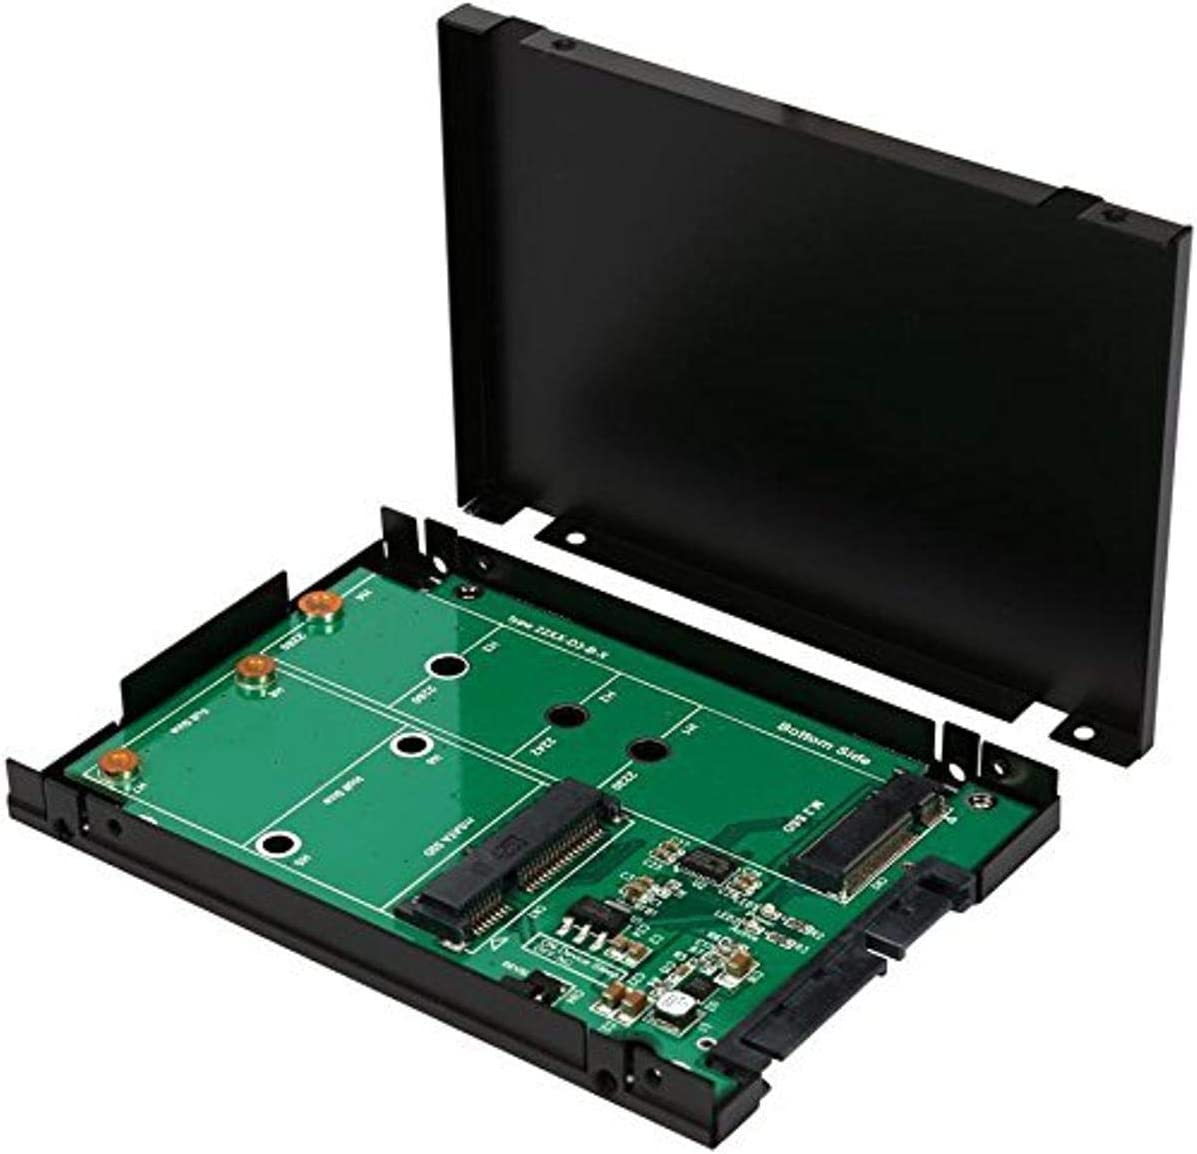 MeterMall Solid State Drive SSD M.2 B-Key and MSATA 2-in-1 to SATA 3.0 Riser Card Electronic and Accessories